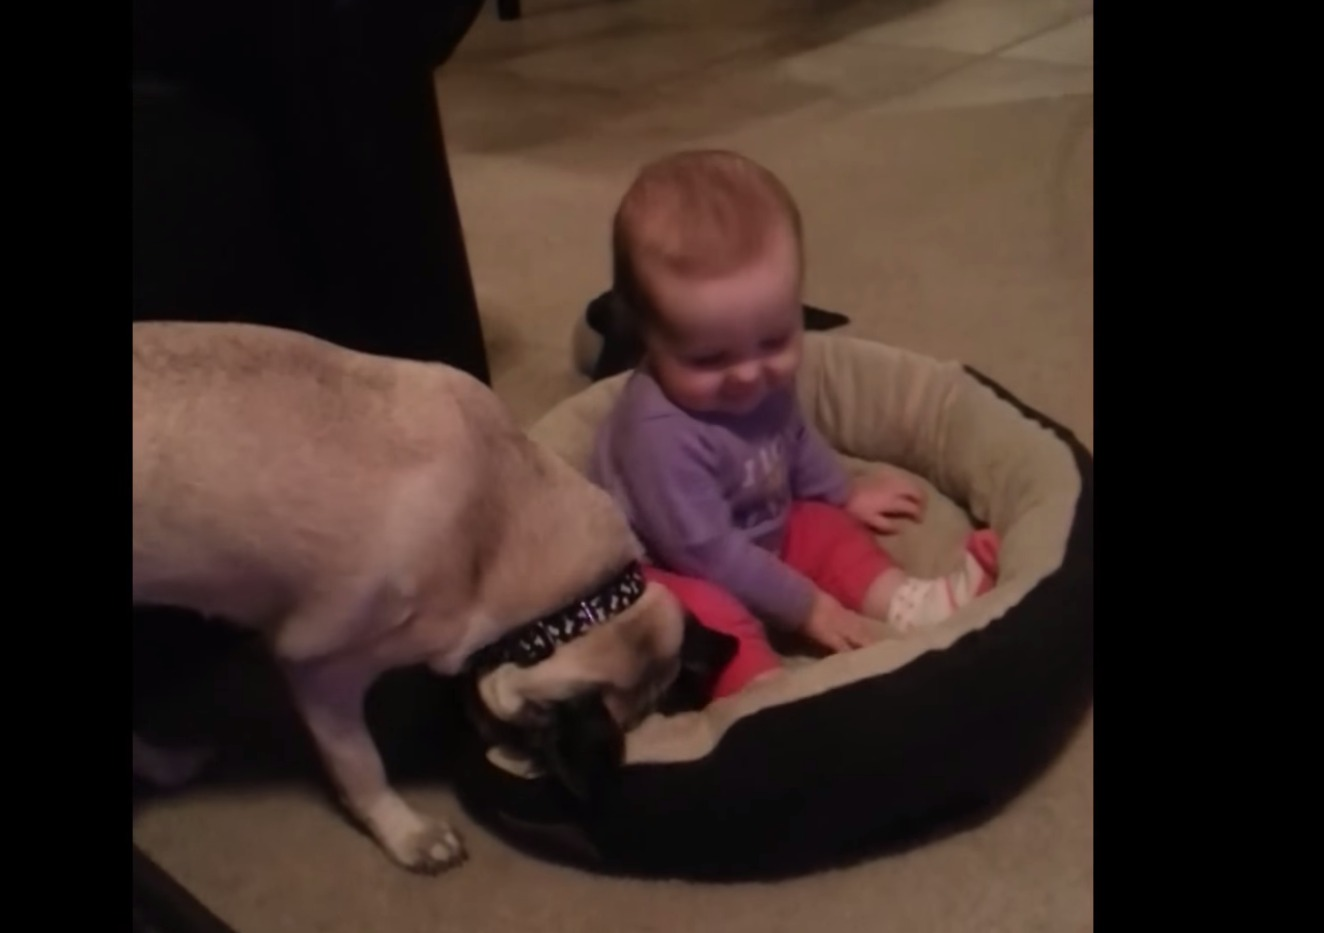 The battle is on between this pug and the mischievous baby who stole its bed